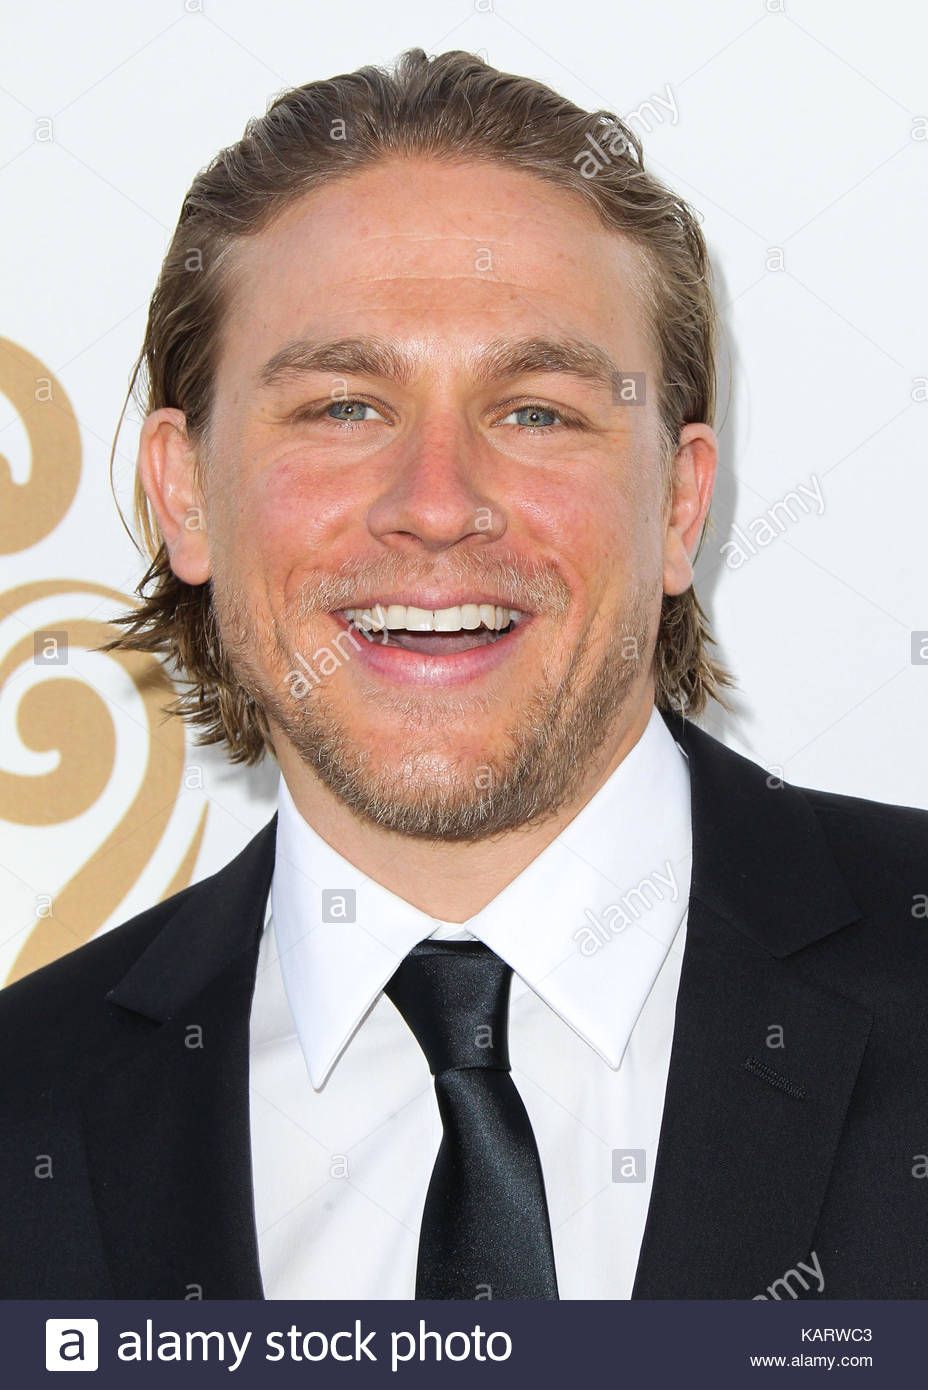 Charlie Hunnam. 12th Annual Huading Film Awards held at the Montalban Theatre on June 1, 2014 in Hollywood, California. Stock Photo